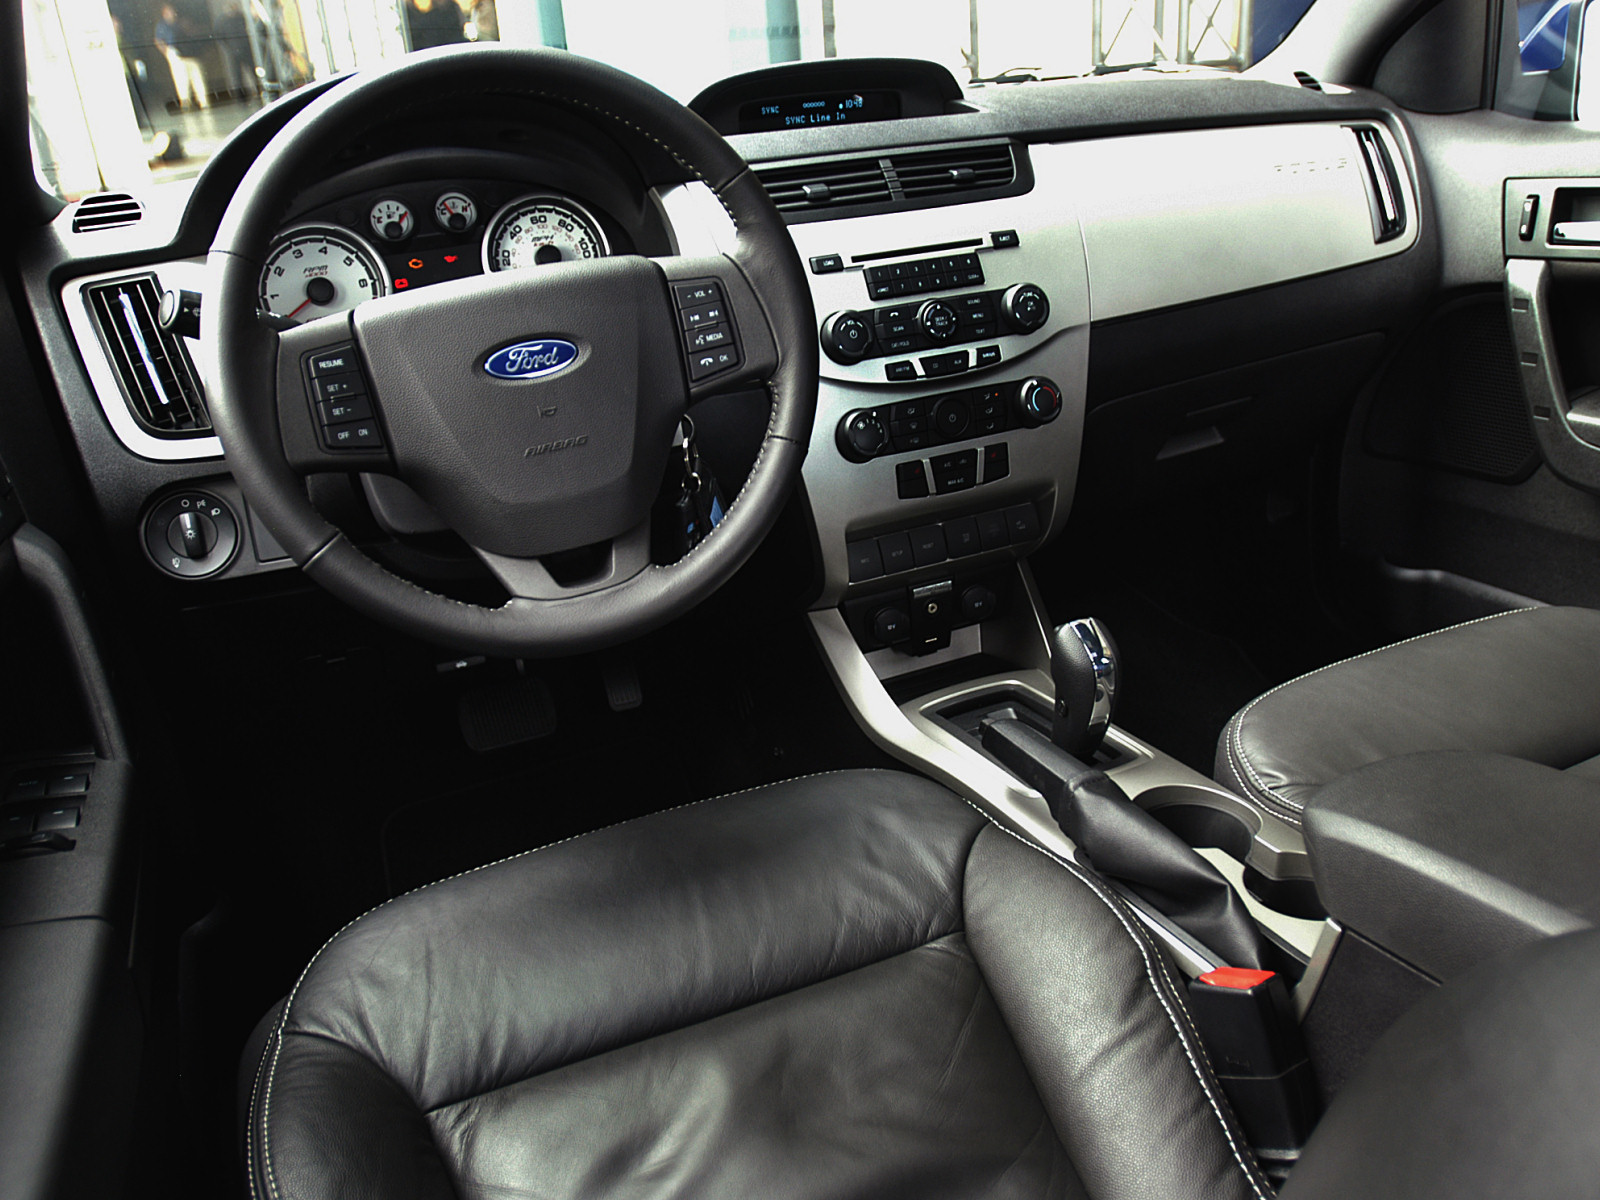 Ford Fiesta 2014 Sedan Black